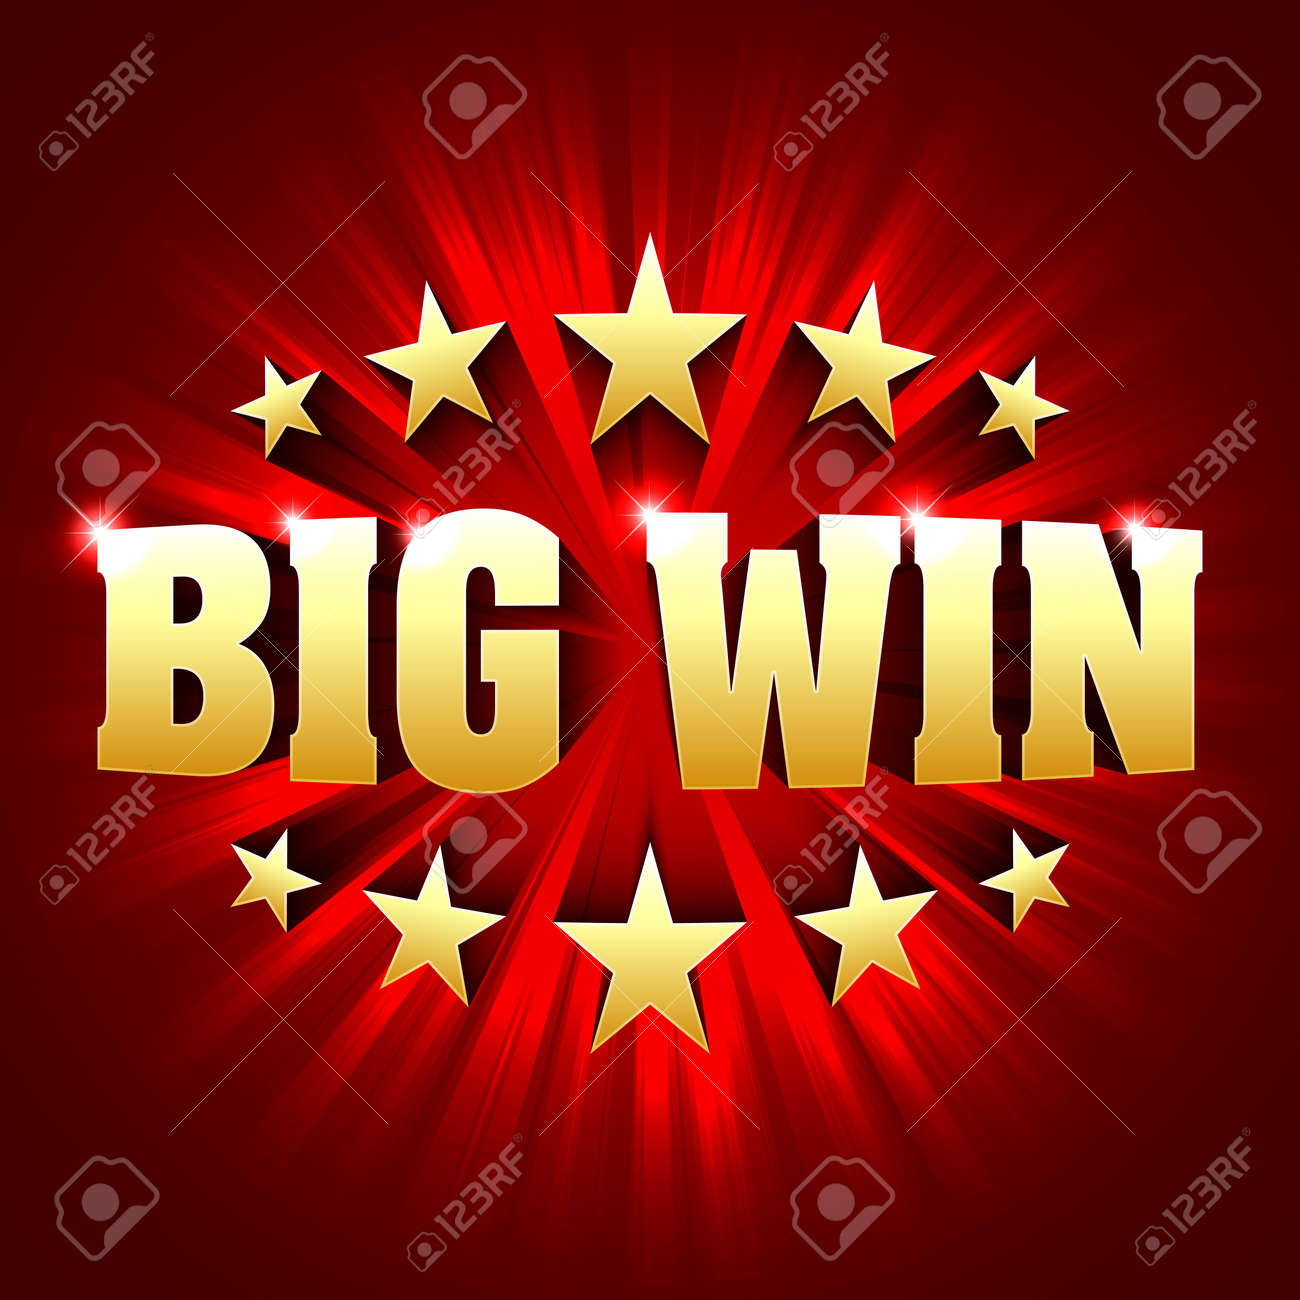 Big Win banner background for lottery or casino games such as poker, roulette, slot machines or card games - 65332221